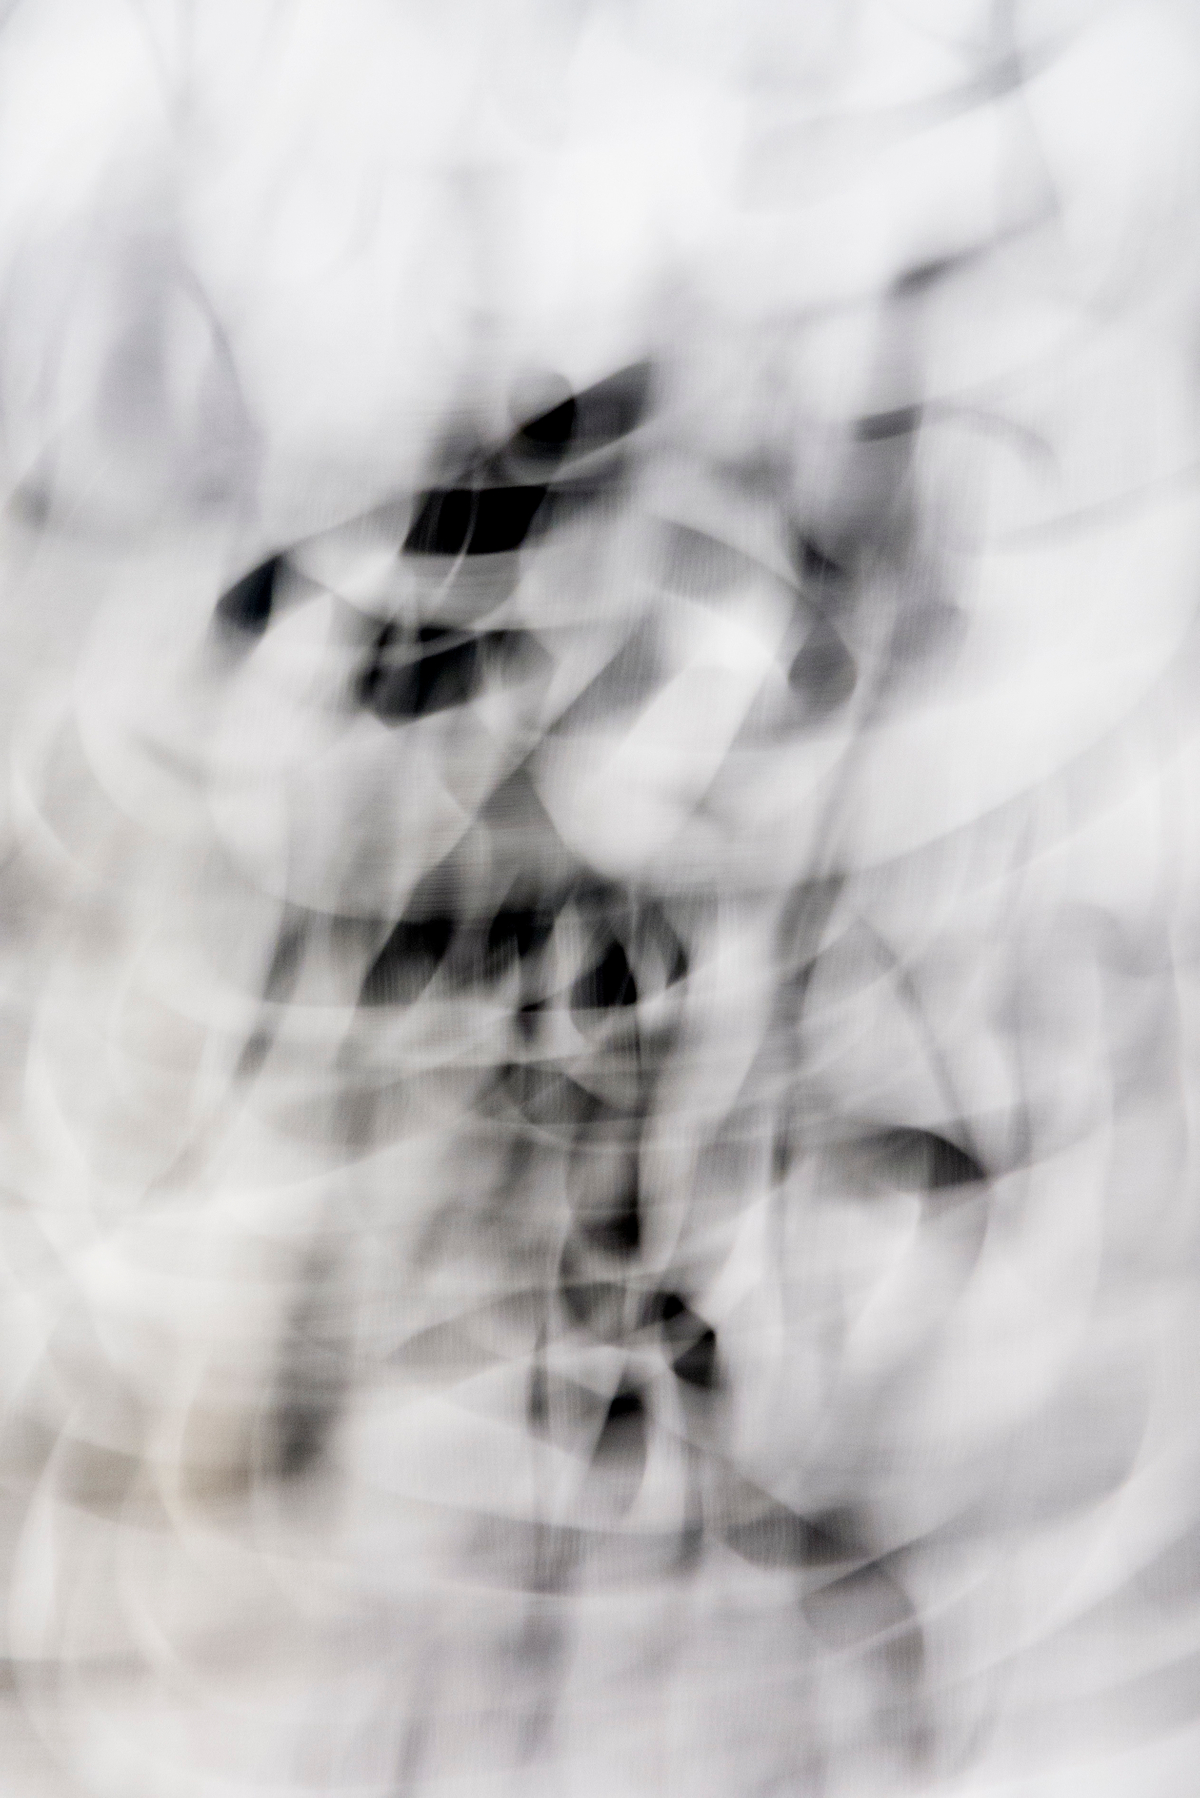 Untitled, 2013, Black and White Abstract Photography, Shirine Gill